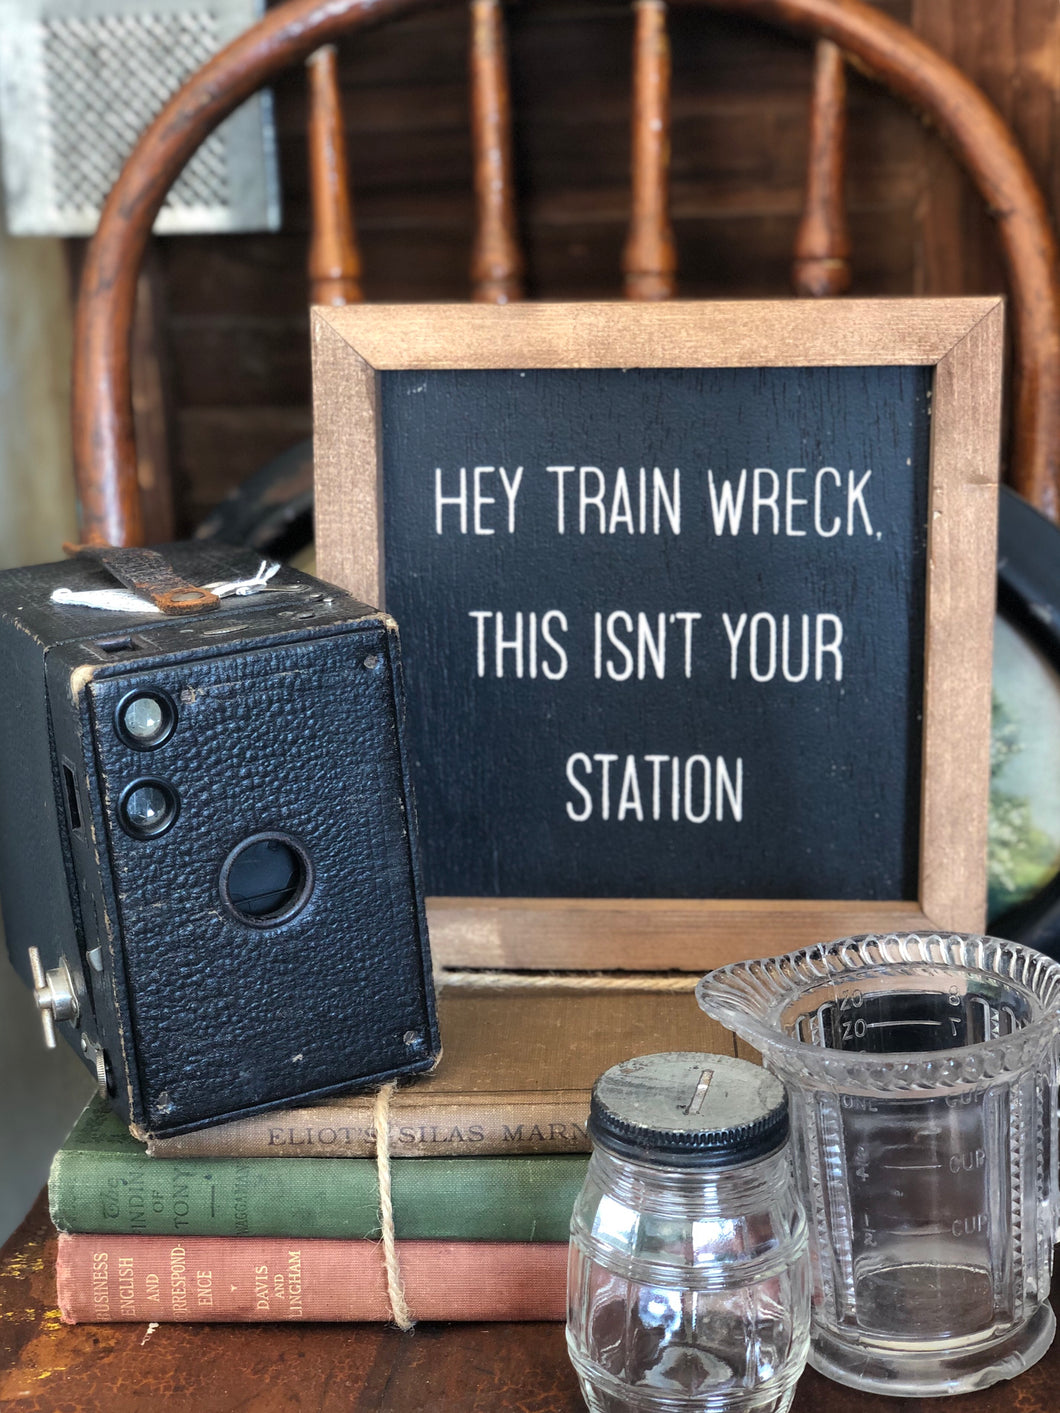 HEY TRAIN WRECK, THIS ISN'T YOUR STATION